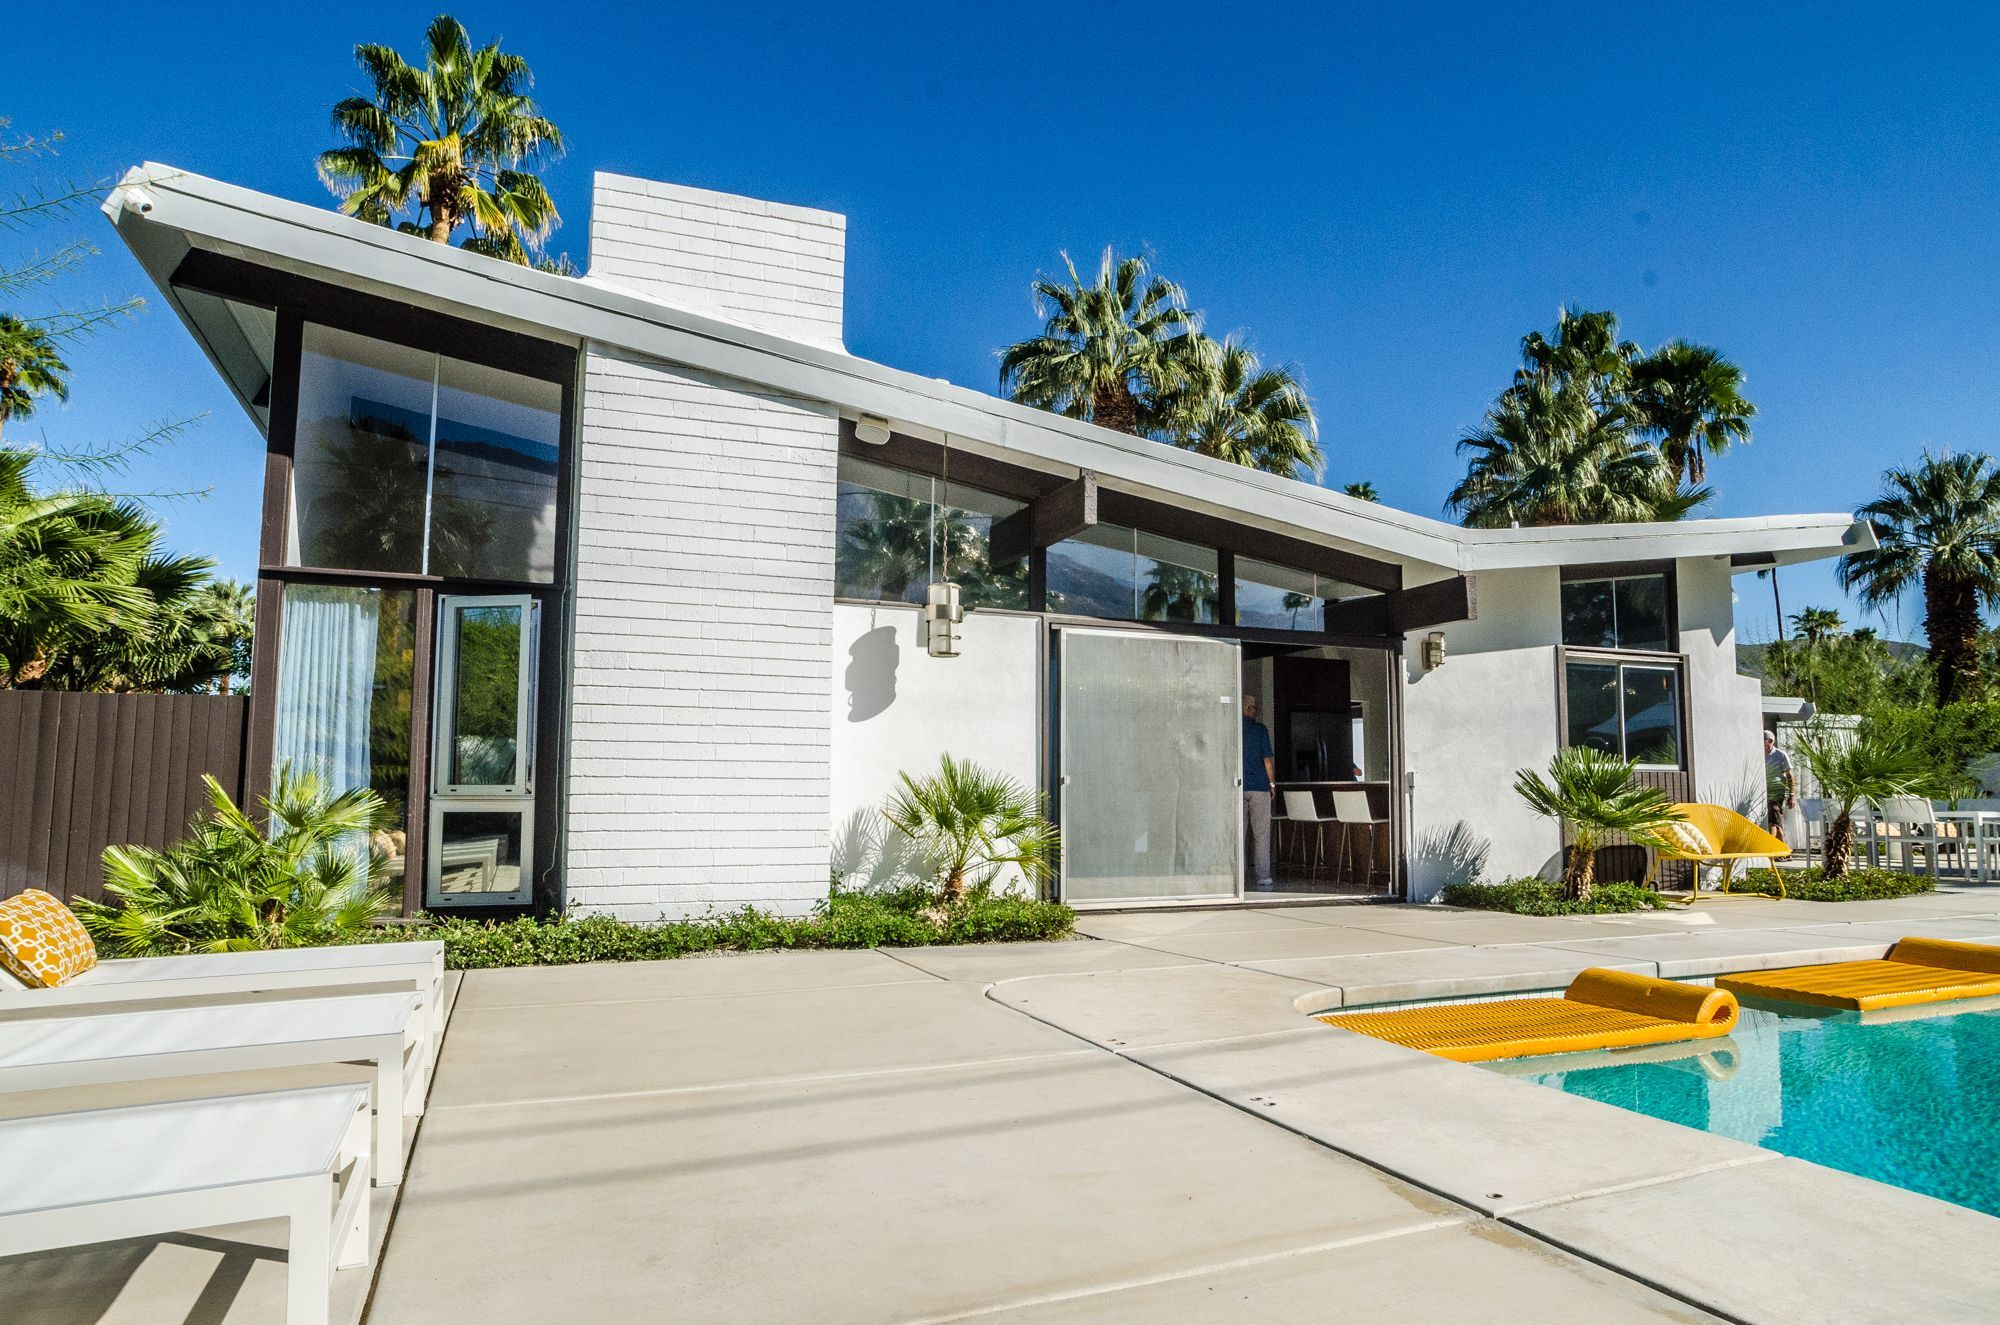 mid century modern homes - Google Search in 2020 | Palm ...